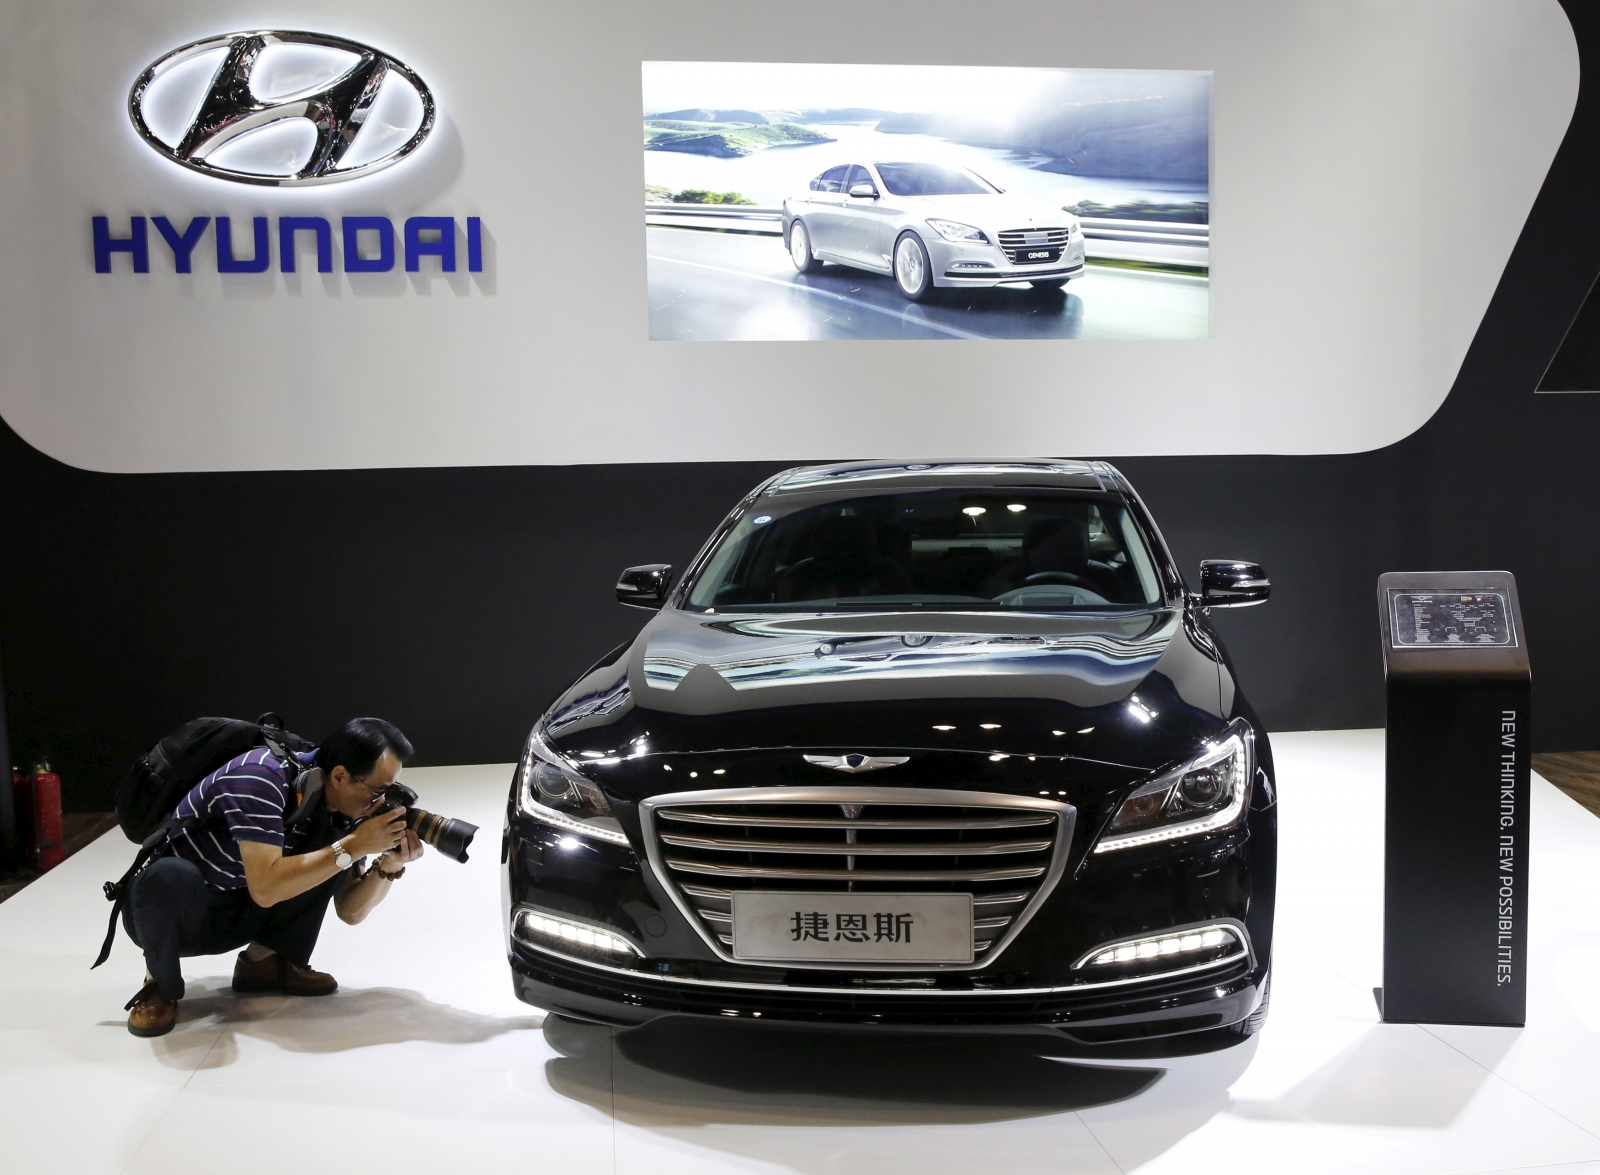 Whistle Blower Triggers Recall Of 240 000 Hyundai And Kia Cars